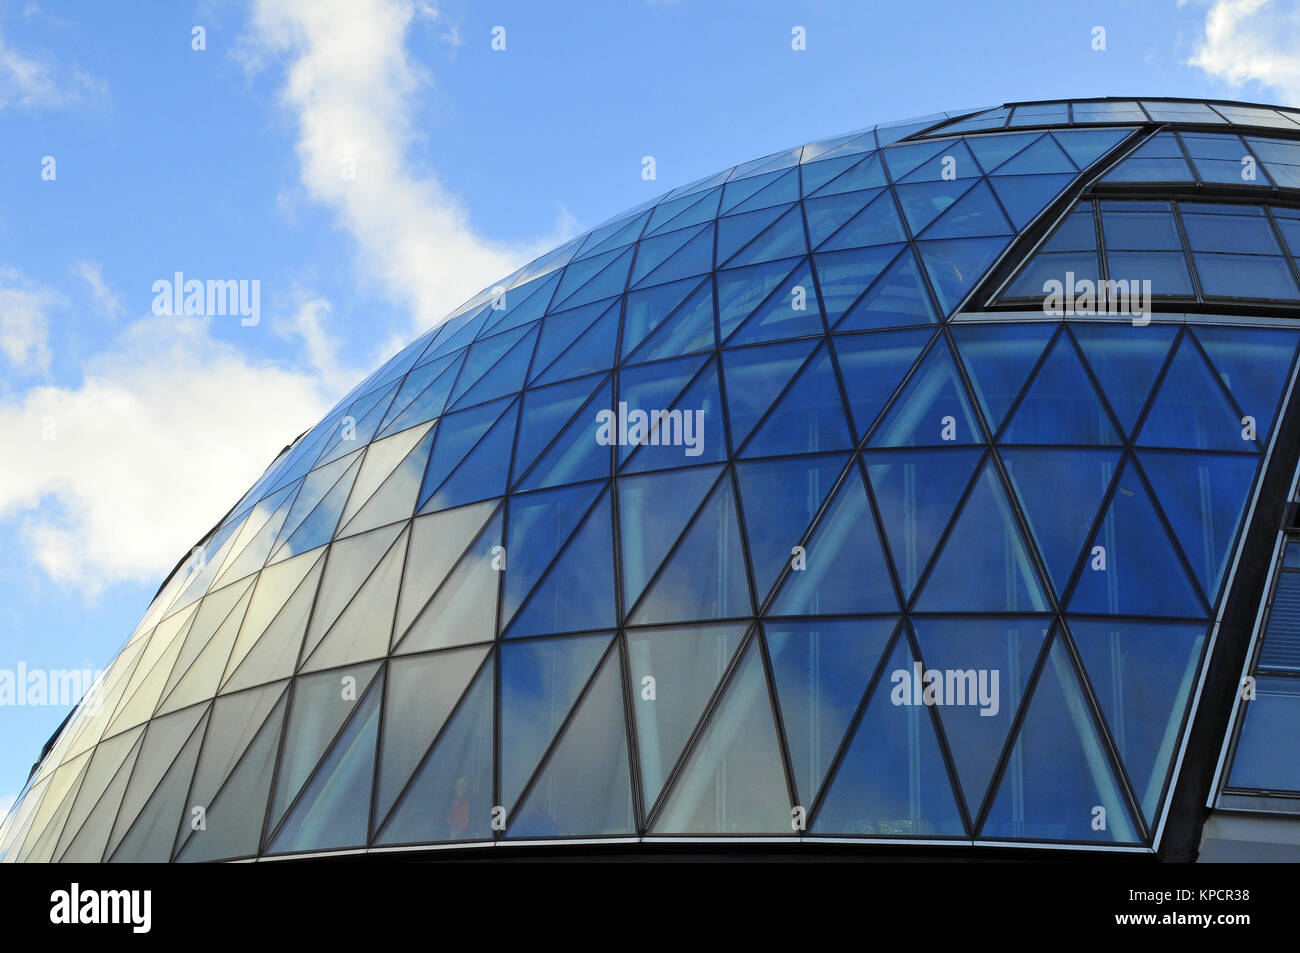 a close up or abstract angle or viewpoint of city hall on the south bank of the river thames near London bridge. - Stock Image